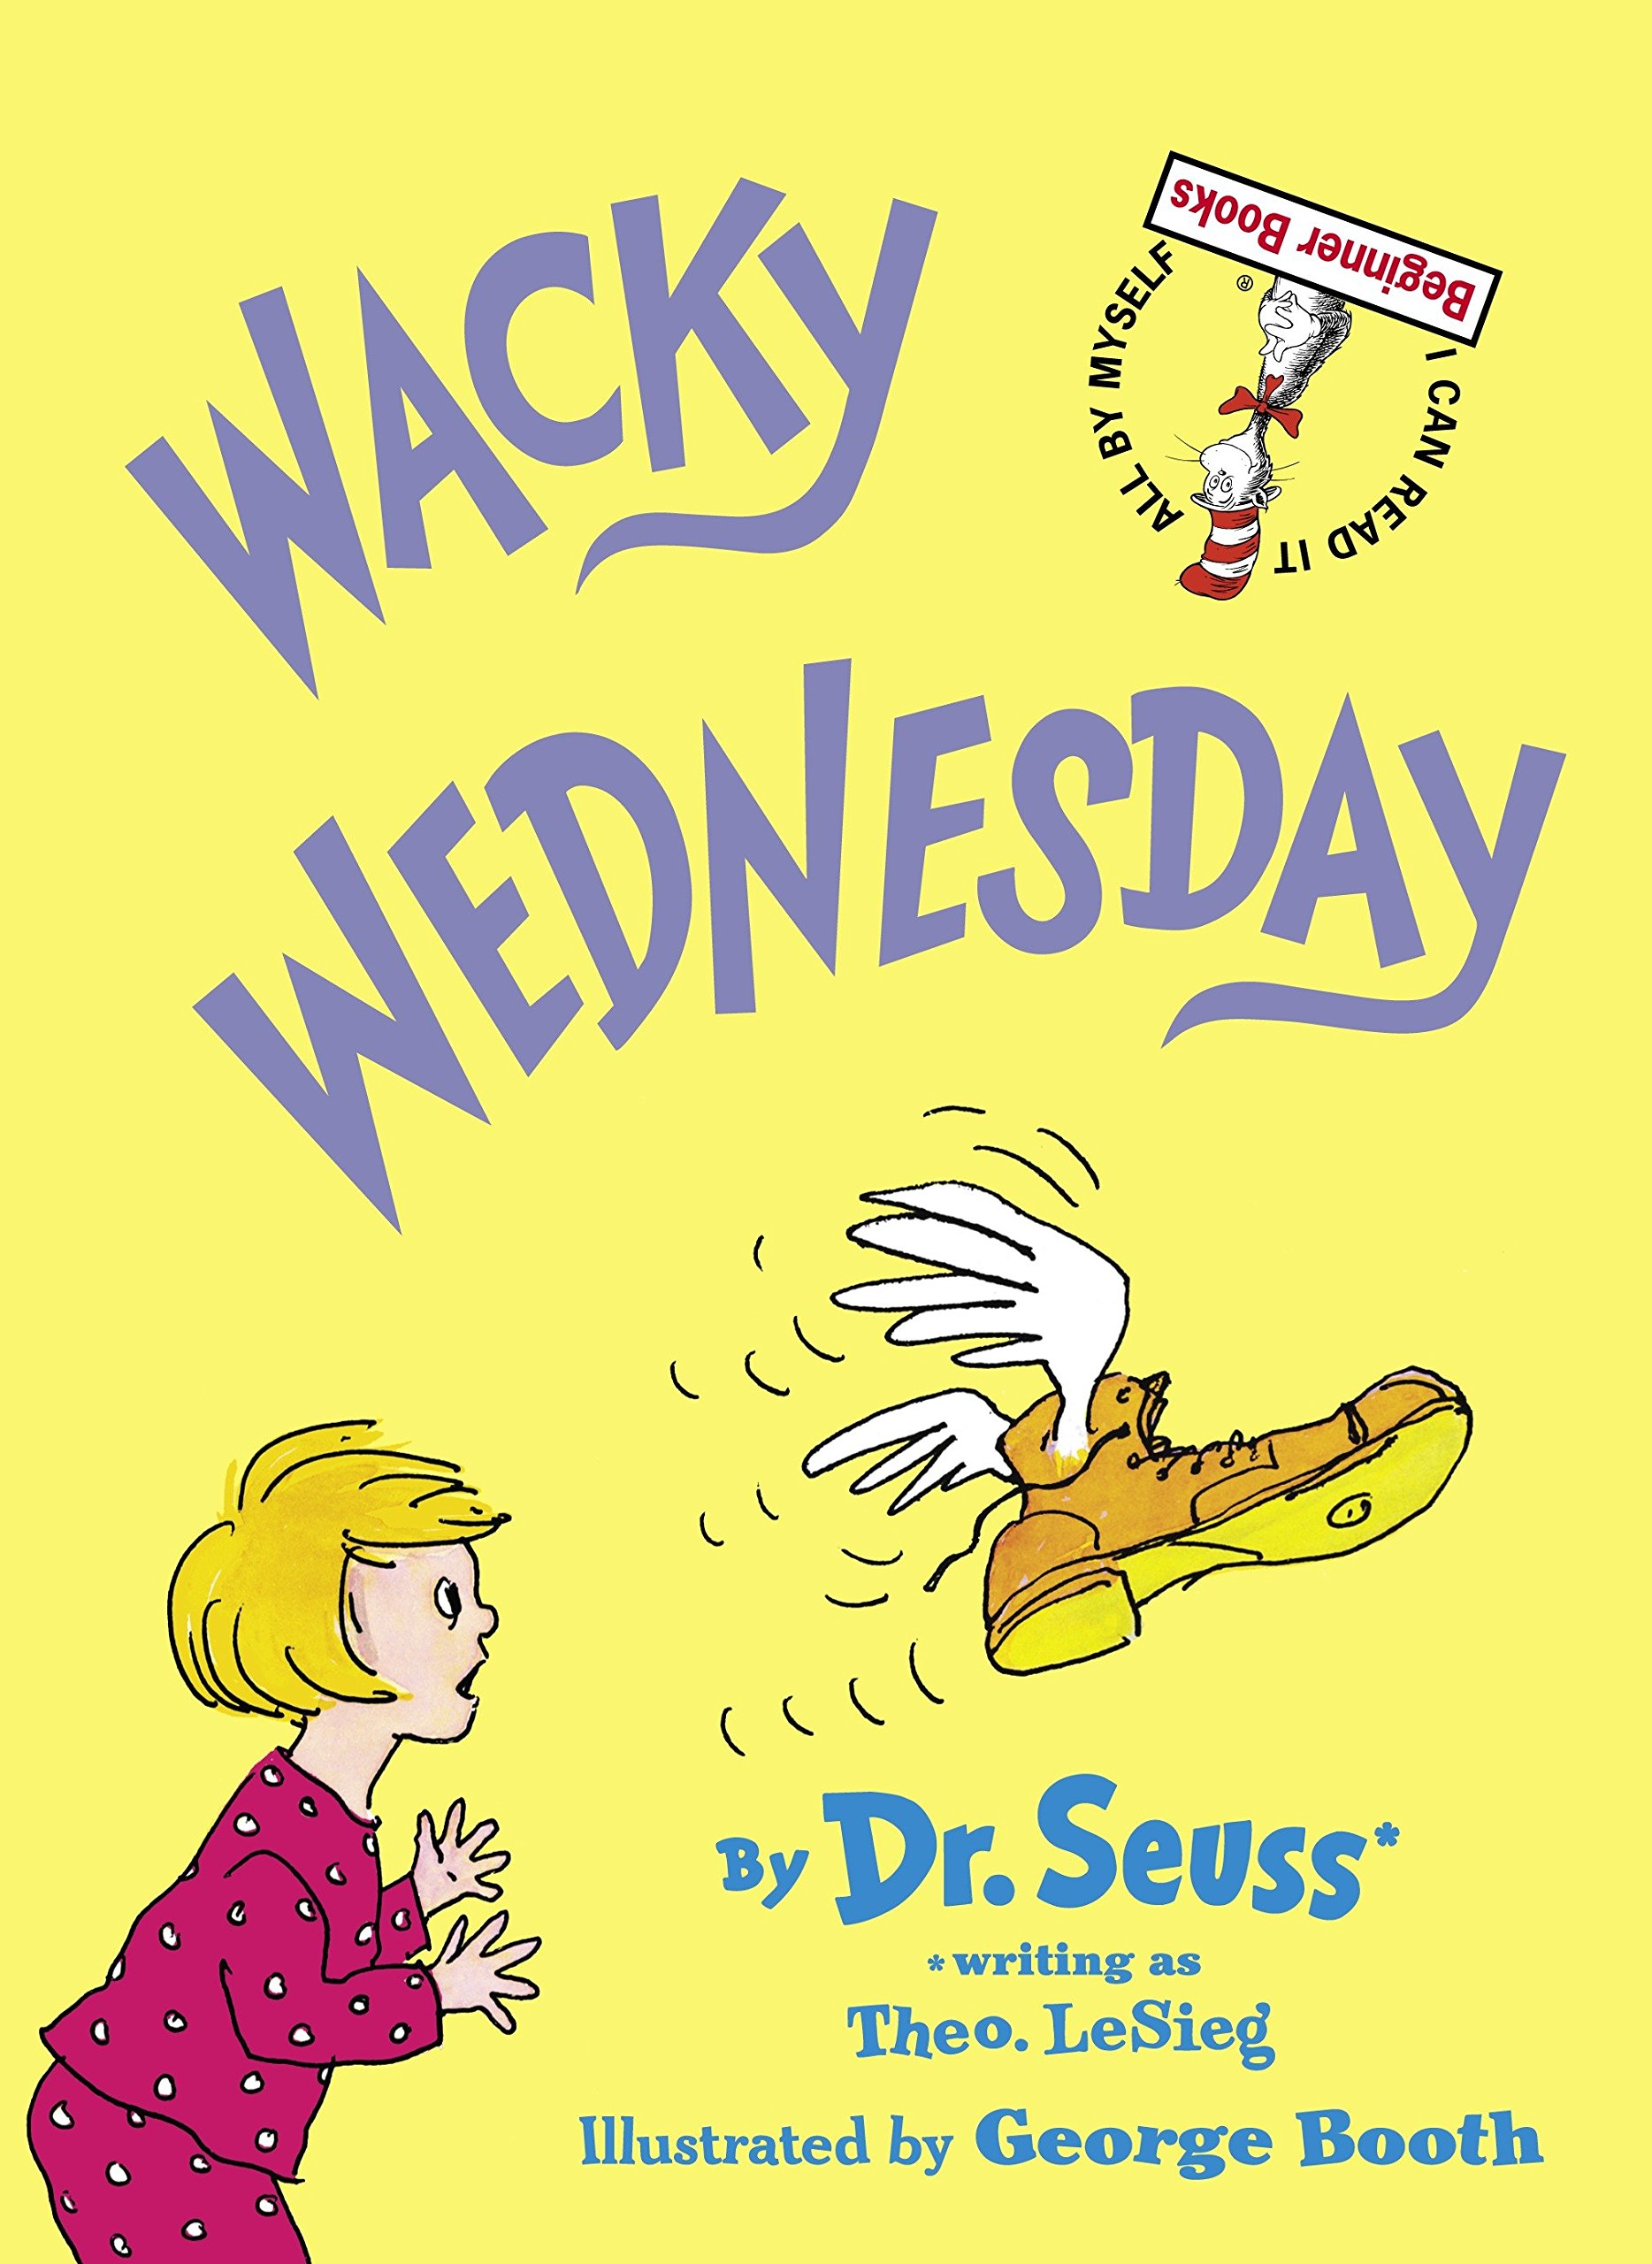 Wacky Wednesday by Dr. Seuss writing as Theo LeSieg